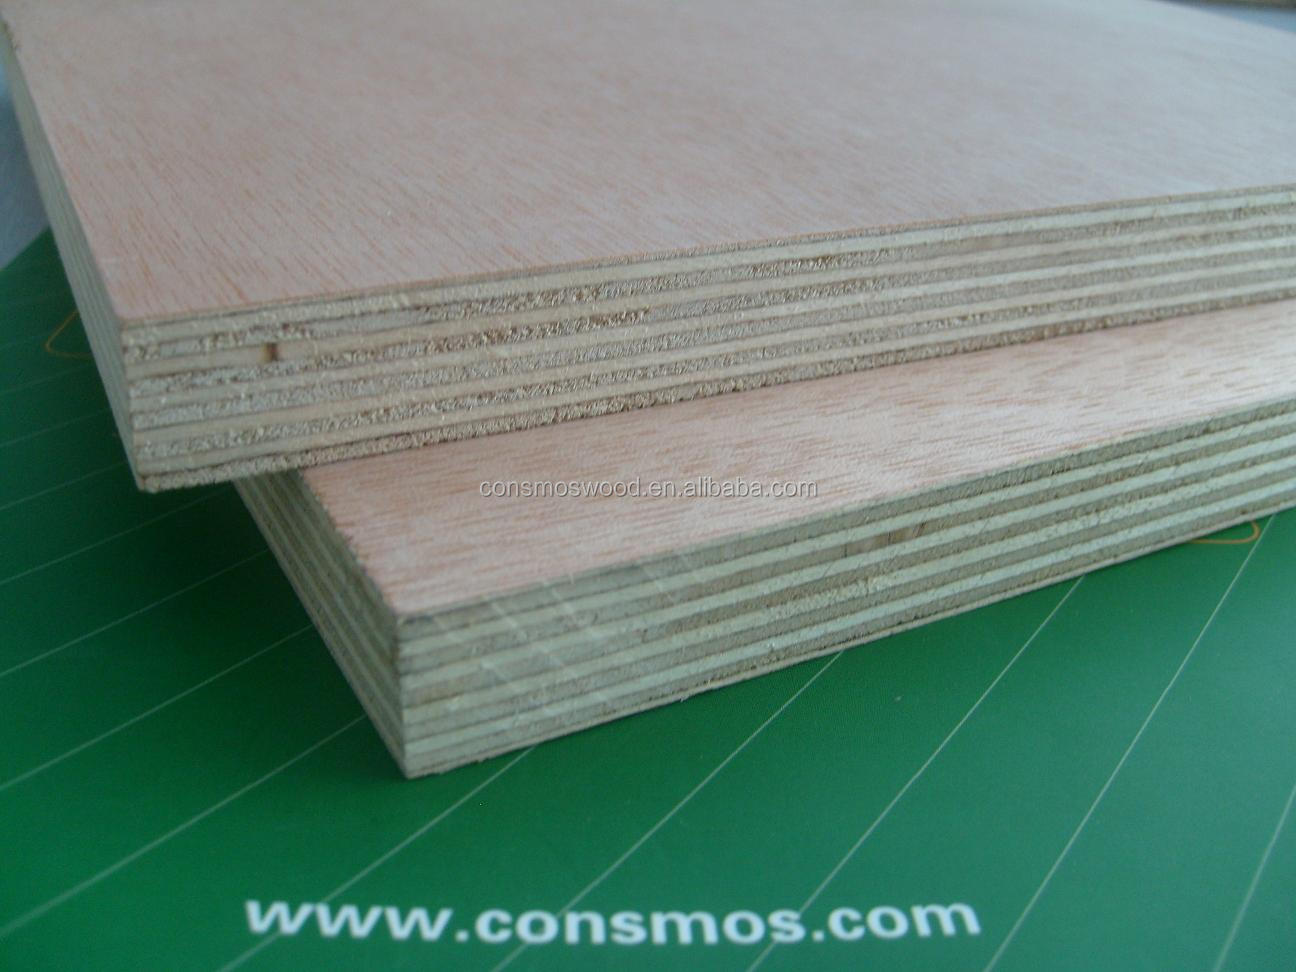 Commercial Plywood Sheet Price, Commercial Plywood Sheet Price Suppliers  And Manufacturers At Alibaba.com